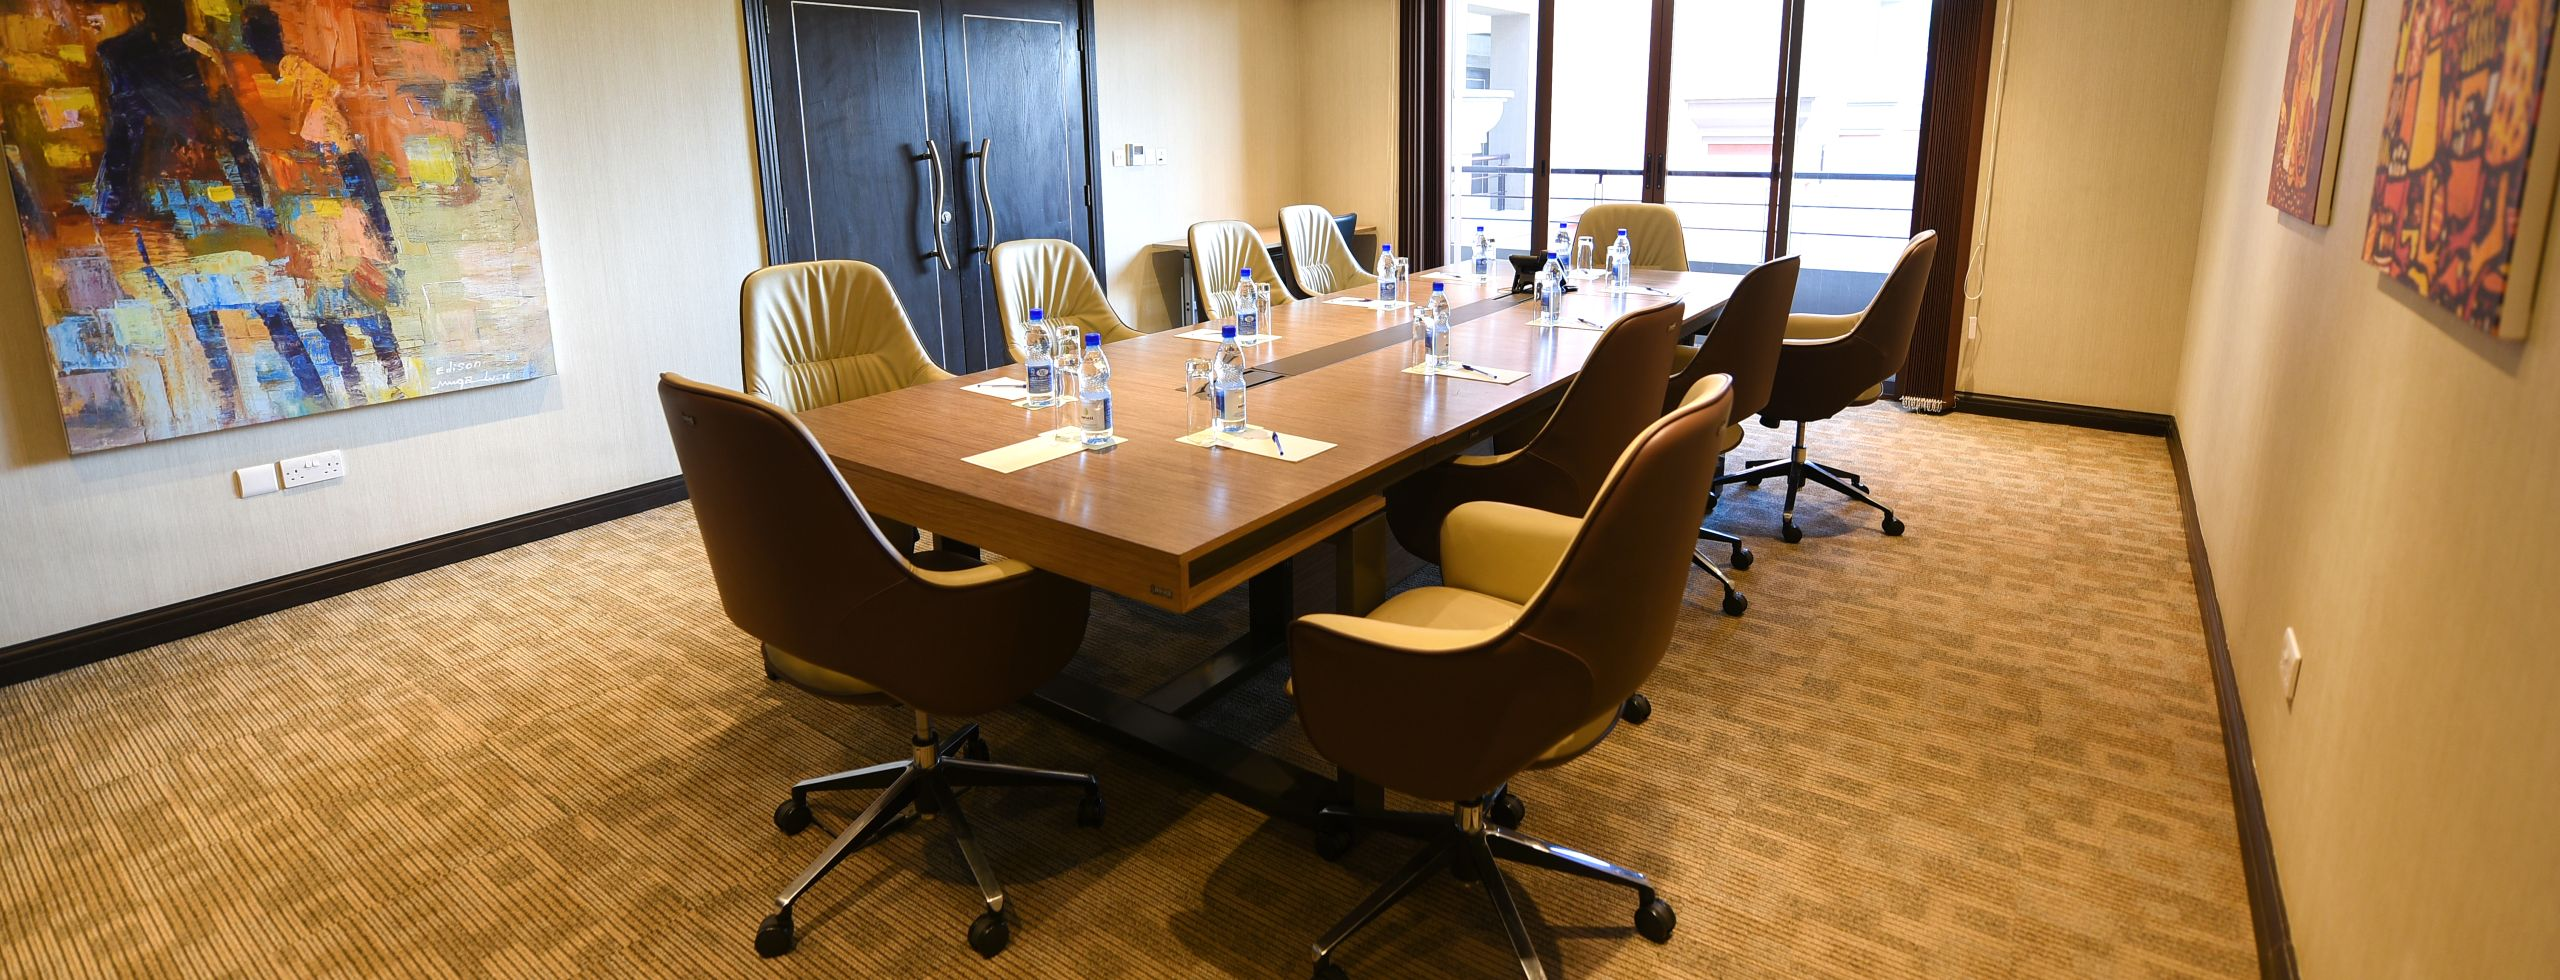 Services Conferences 2 boardroom